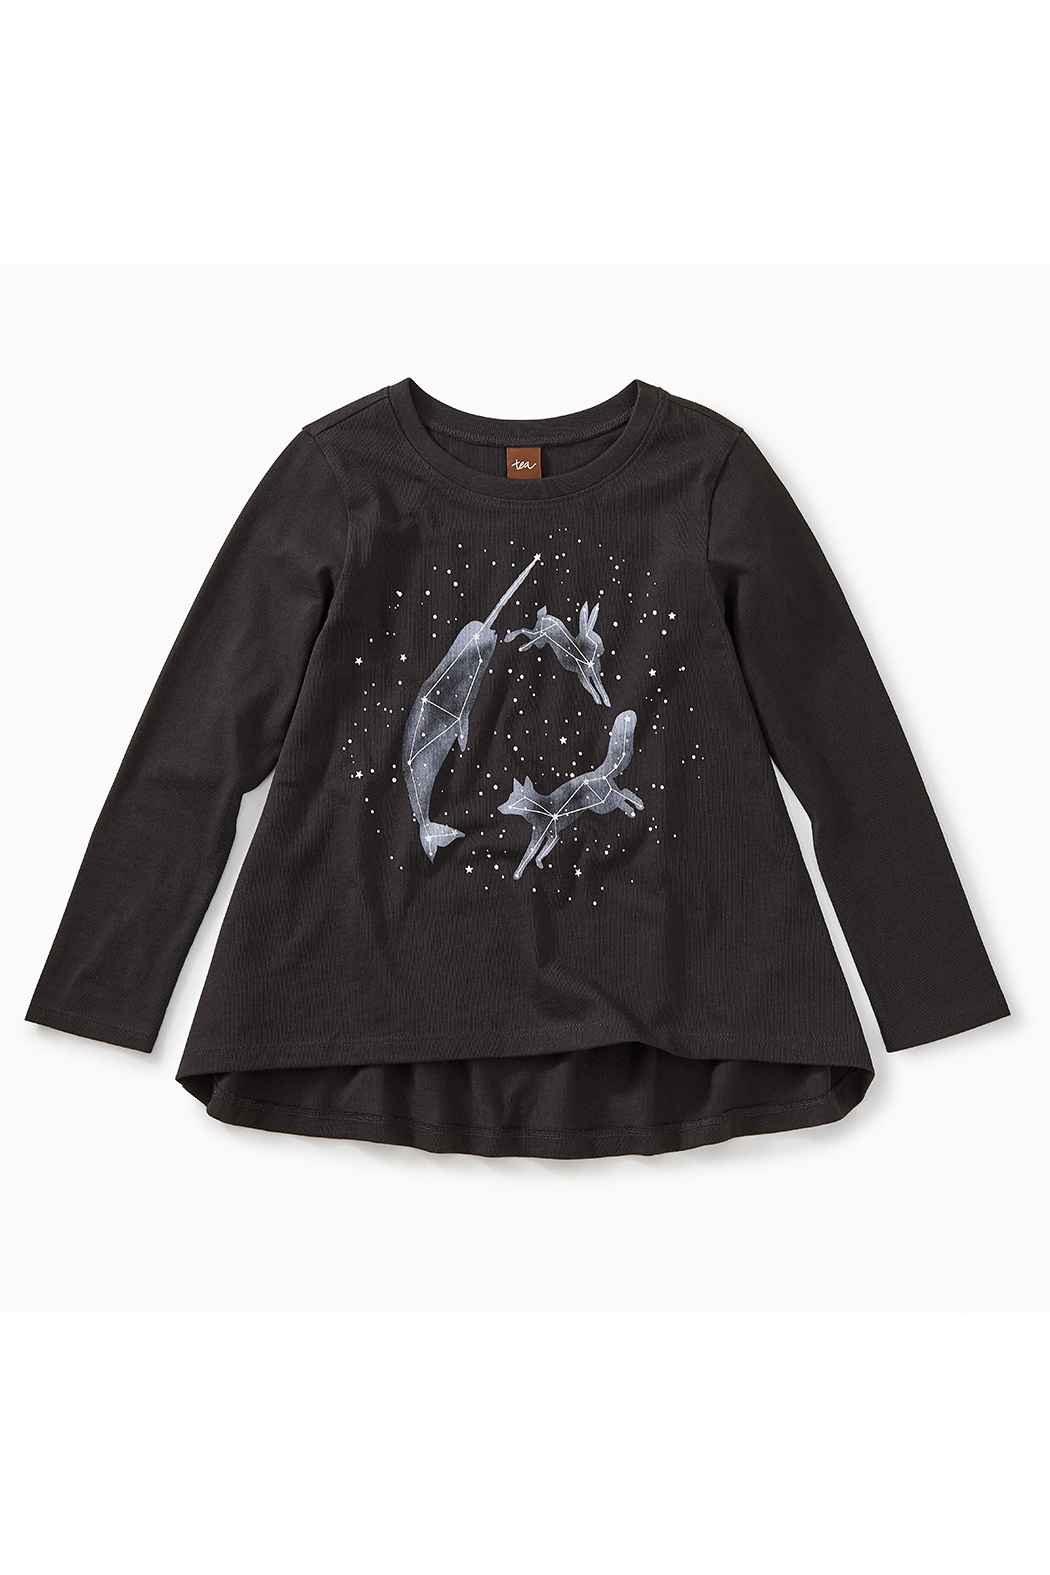 Tea Collection Glow in the Dark Twirl Tee - Front Full Image